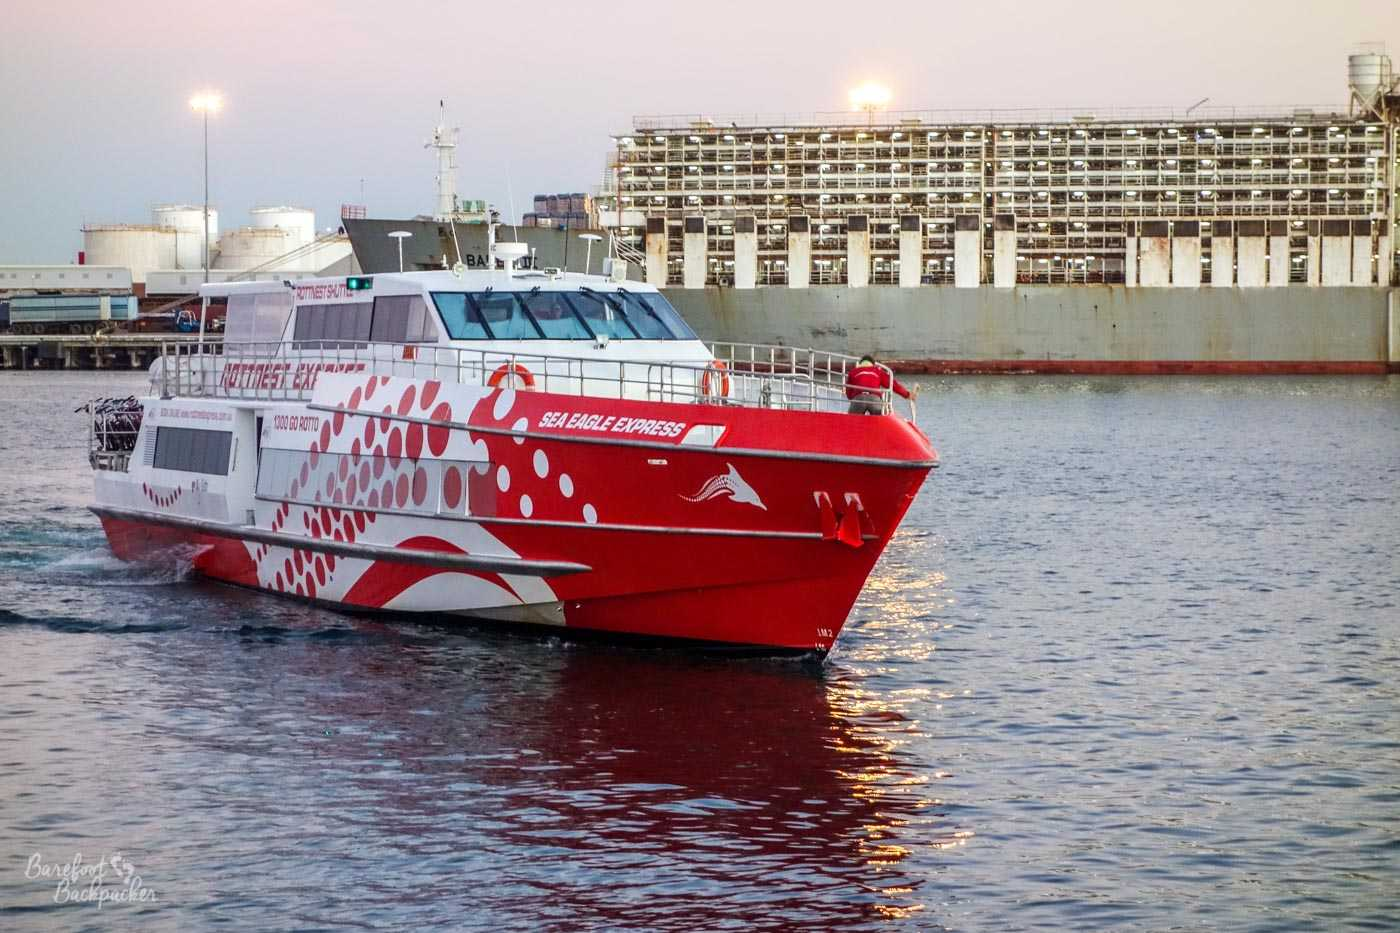 The ferry in Fremantle harbour, that sailed to Rottnest Island. It's big and red.